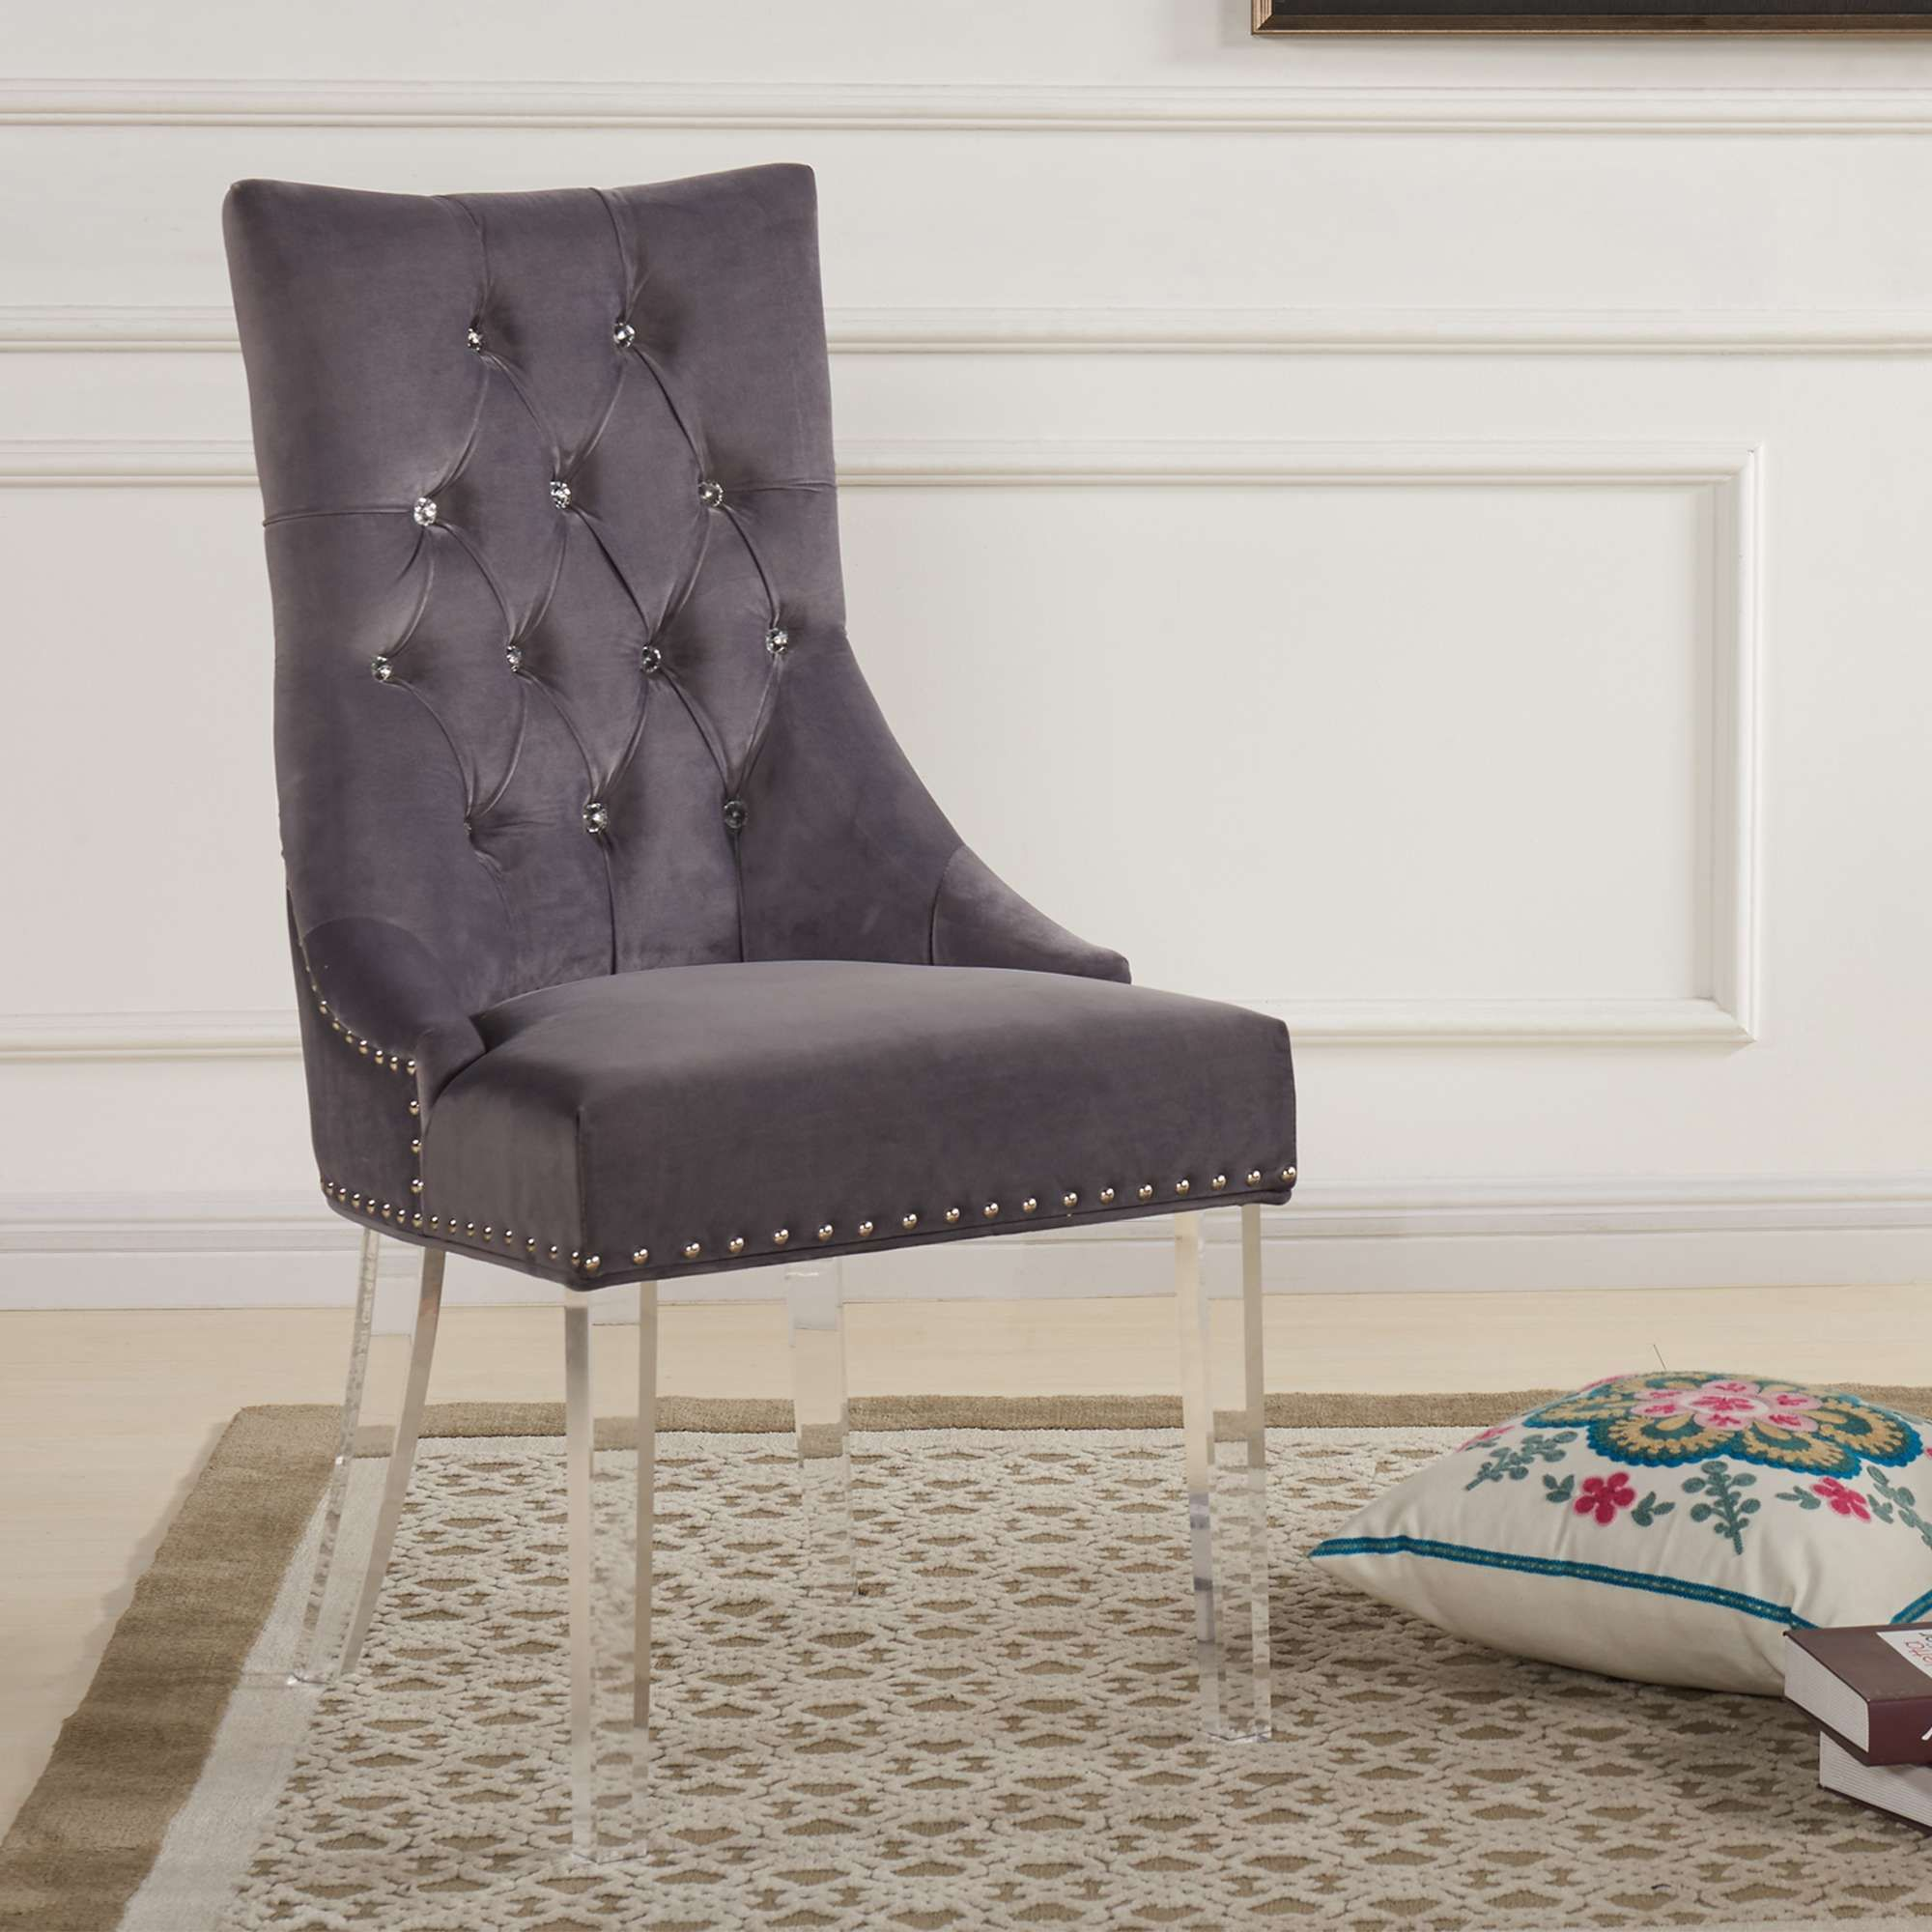 Lowest Price On Armen Living Gobi Modern And Contemporary Tufted